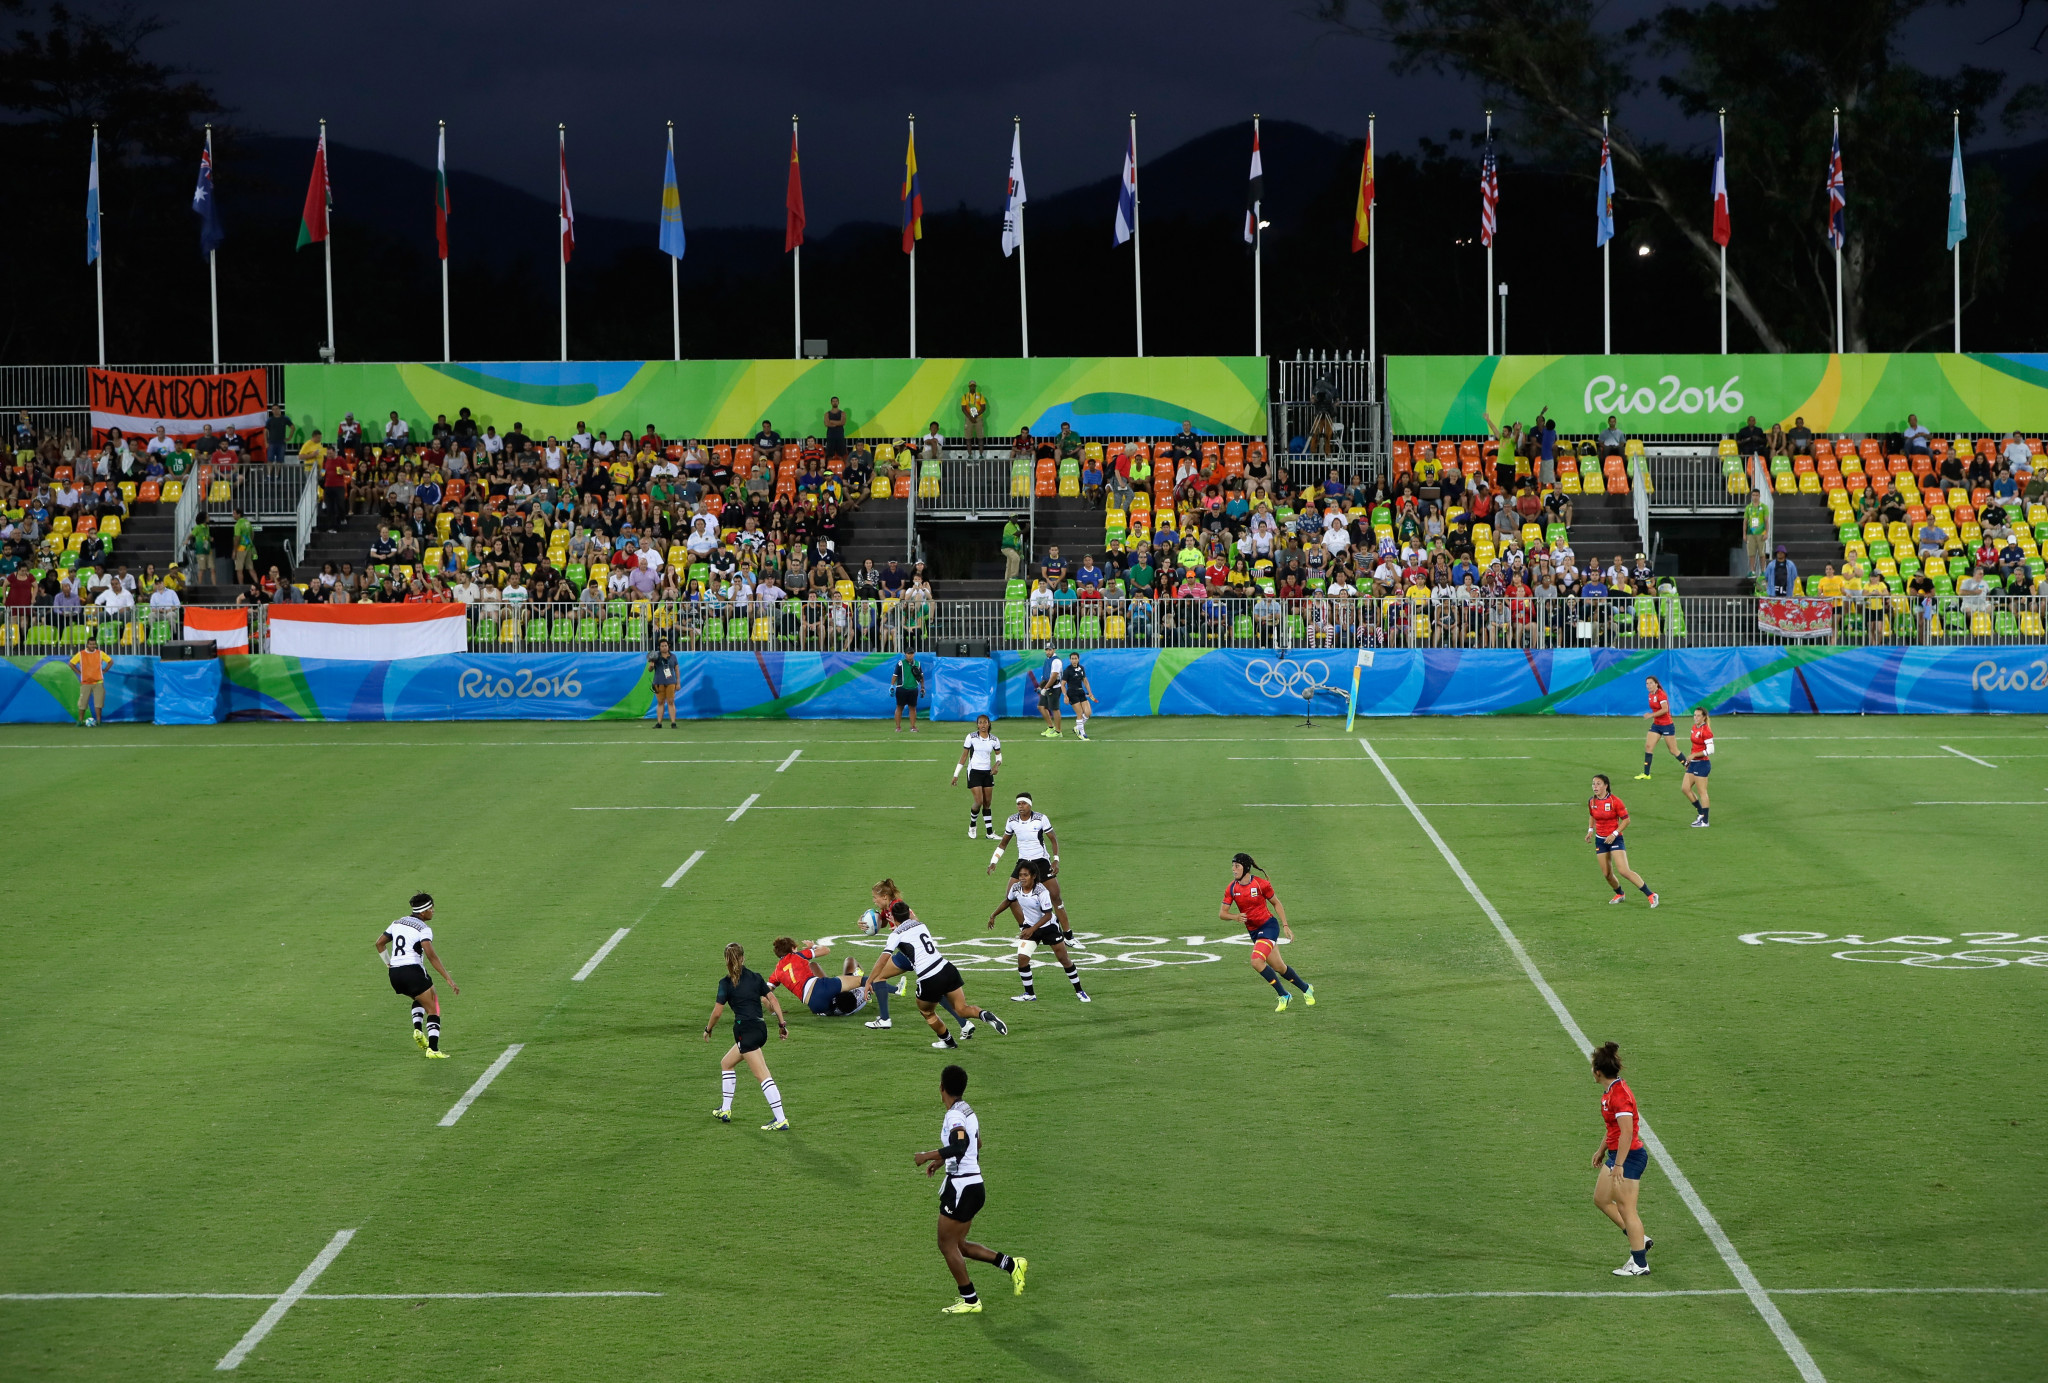 Rugby sevens debuted at the Olympics in Rio in 2016, putting the sport under extra scrutiny ©Getty Images